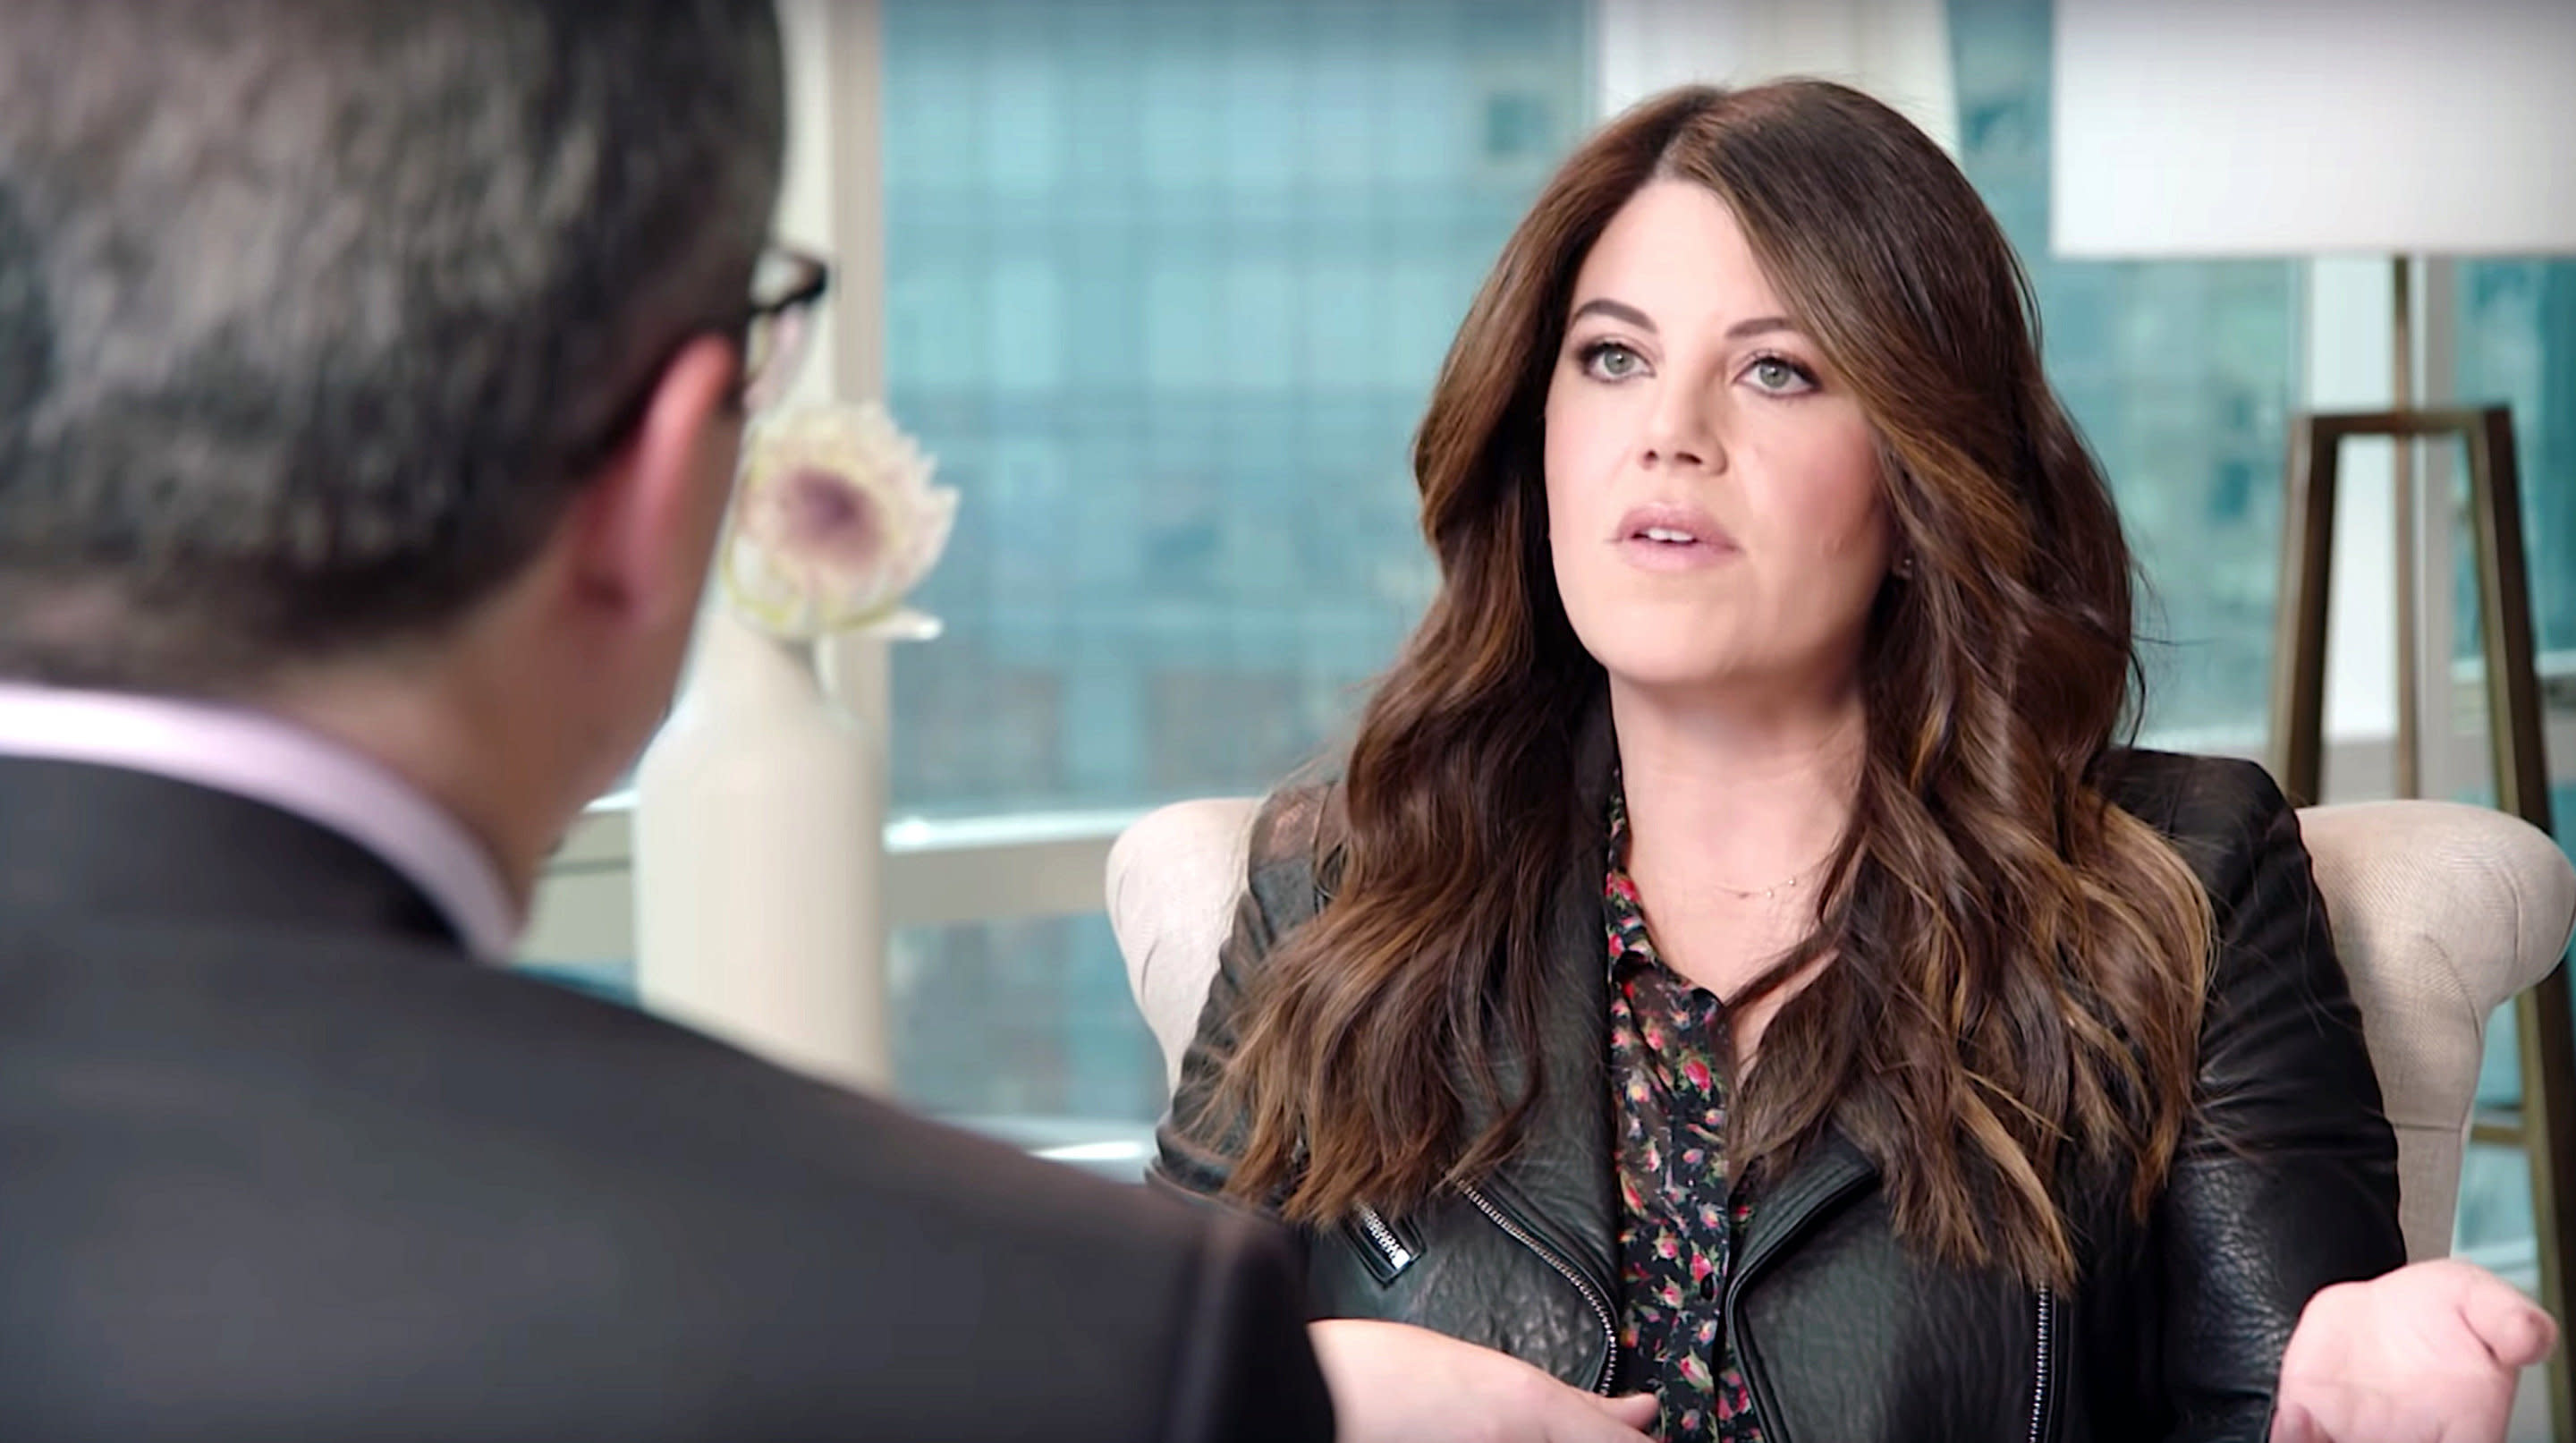 John Oliver, With Help From Monica Lewinsky, Calls Out Public Shaming